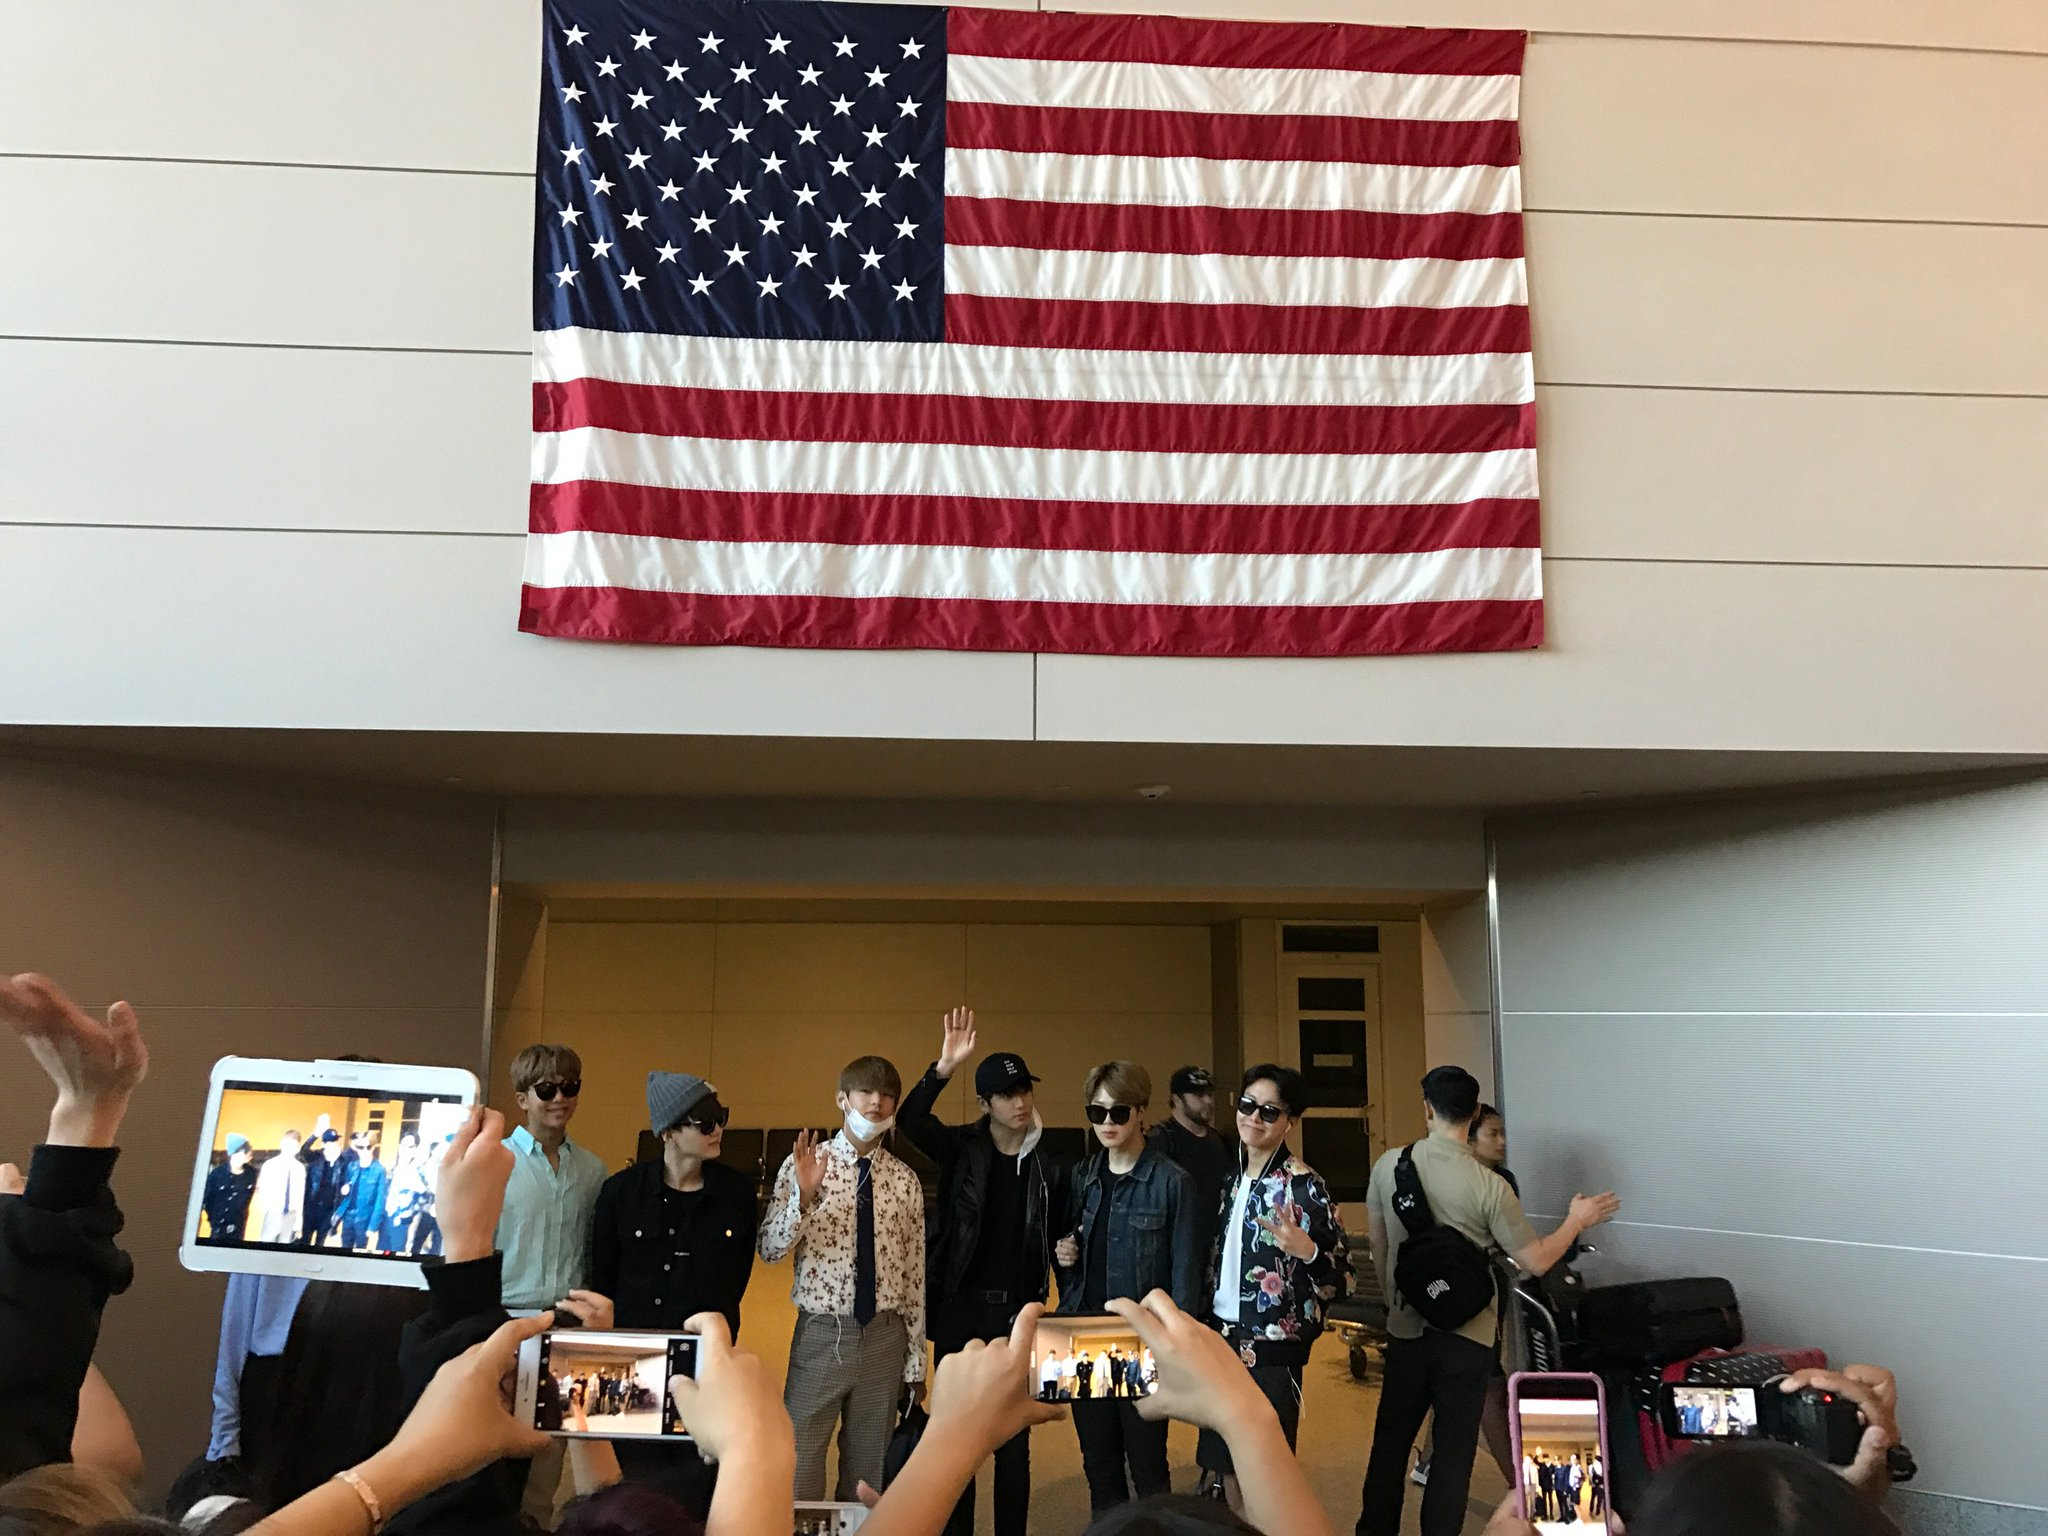 .@BTS_twt has landed in Las Vegas. ✈️ #BBMAs, here they come! https://t.co/7E1W6JO9iH